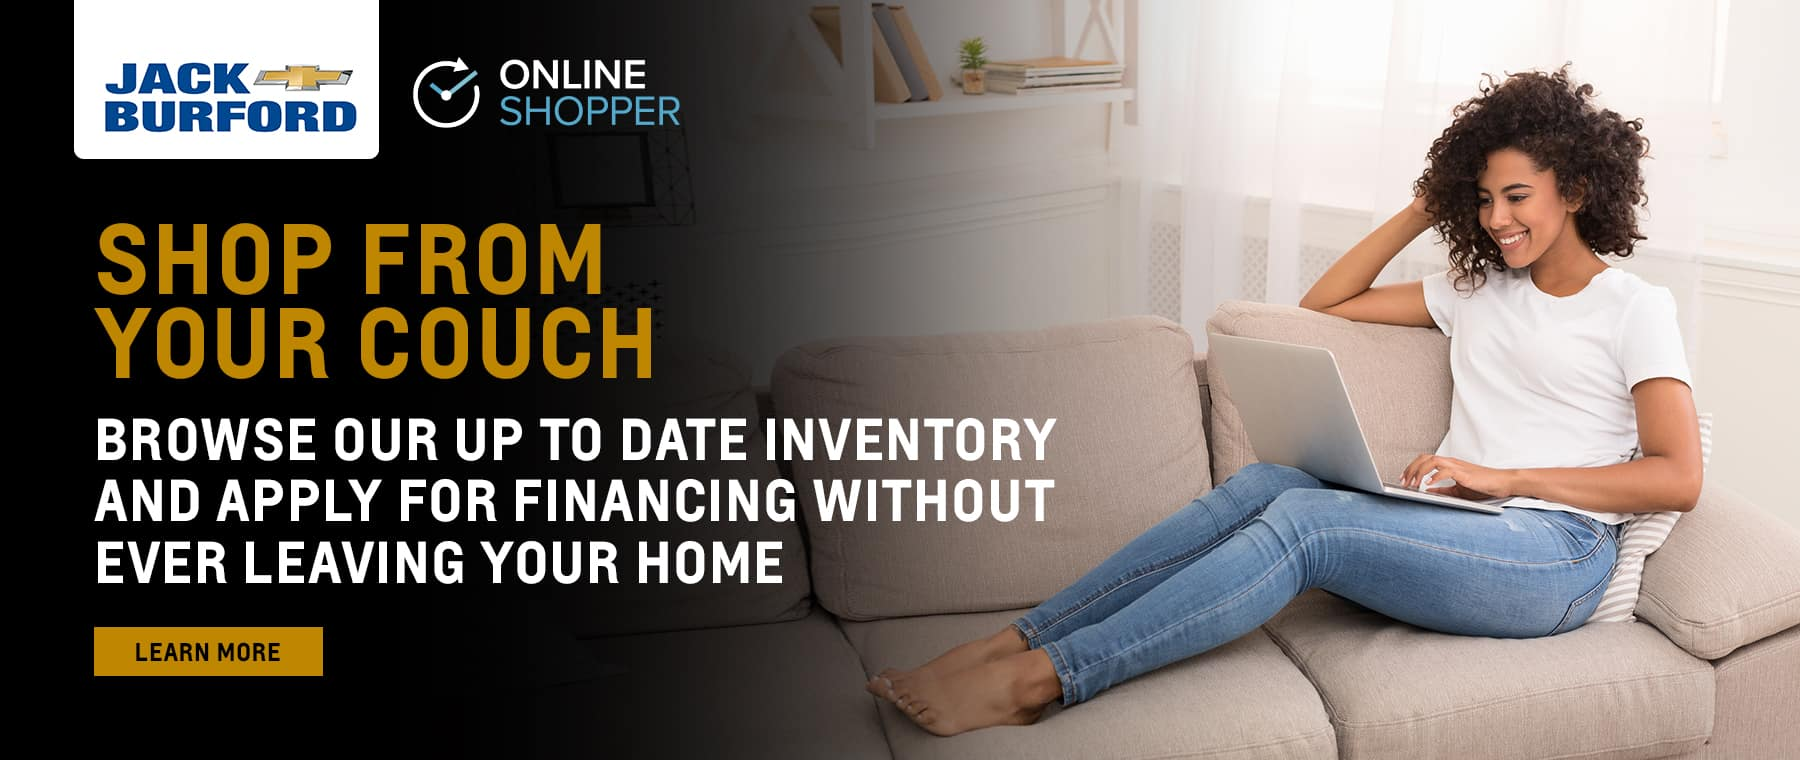 Shop from your couch! Browse up to date inventory and apply for financing from home